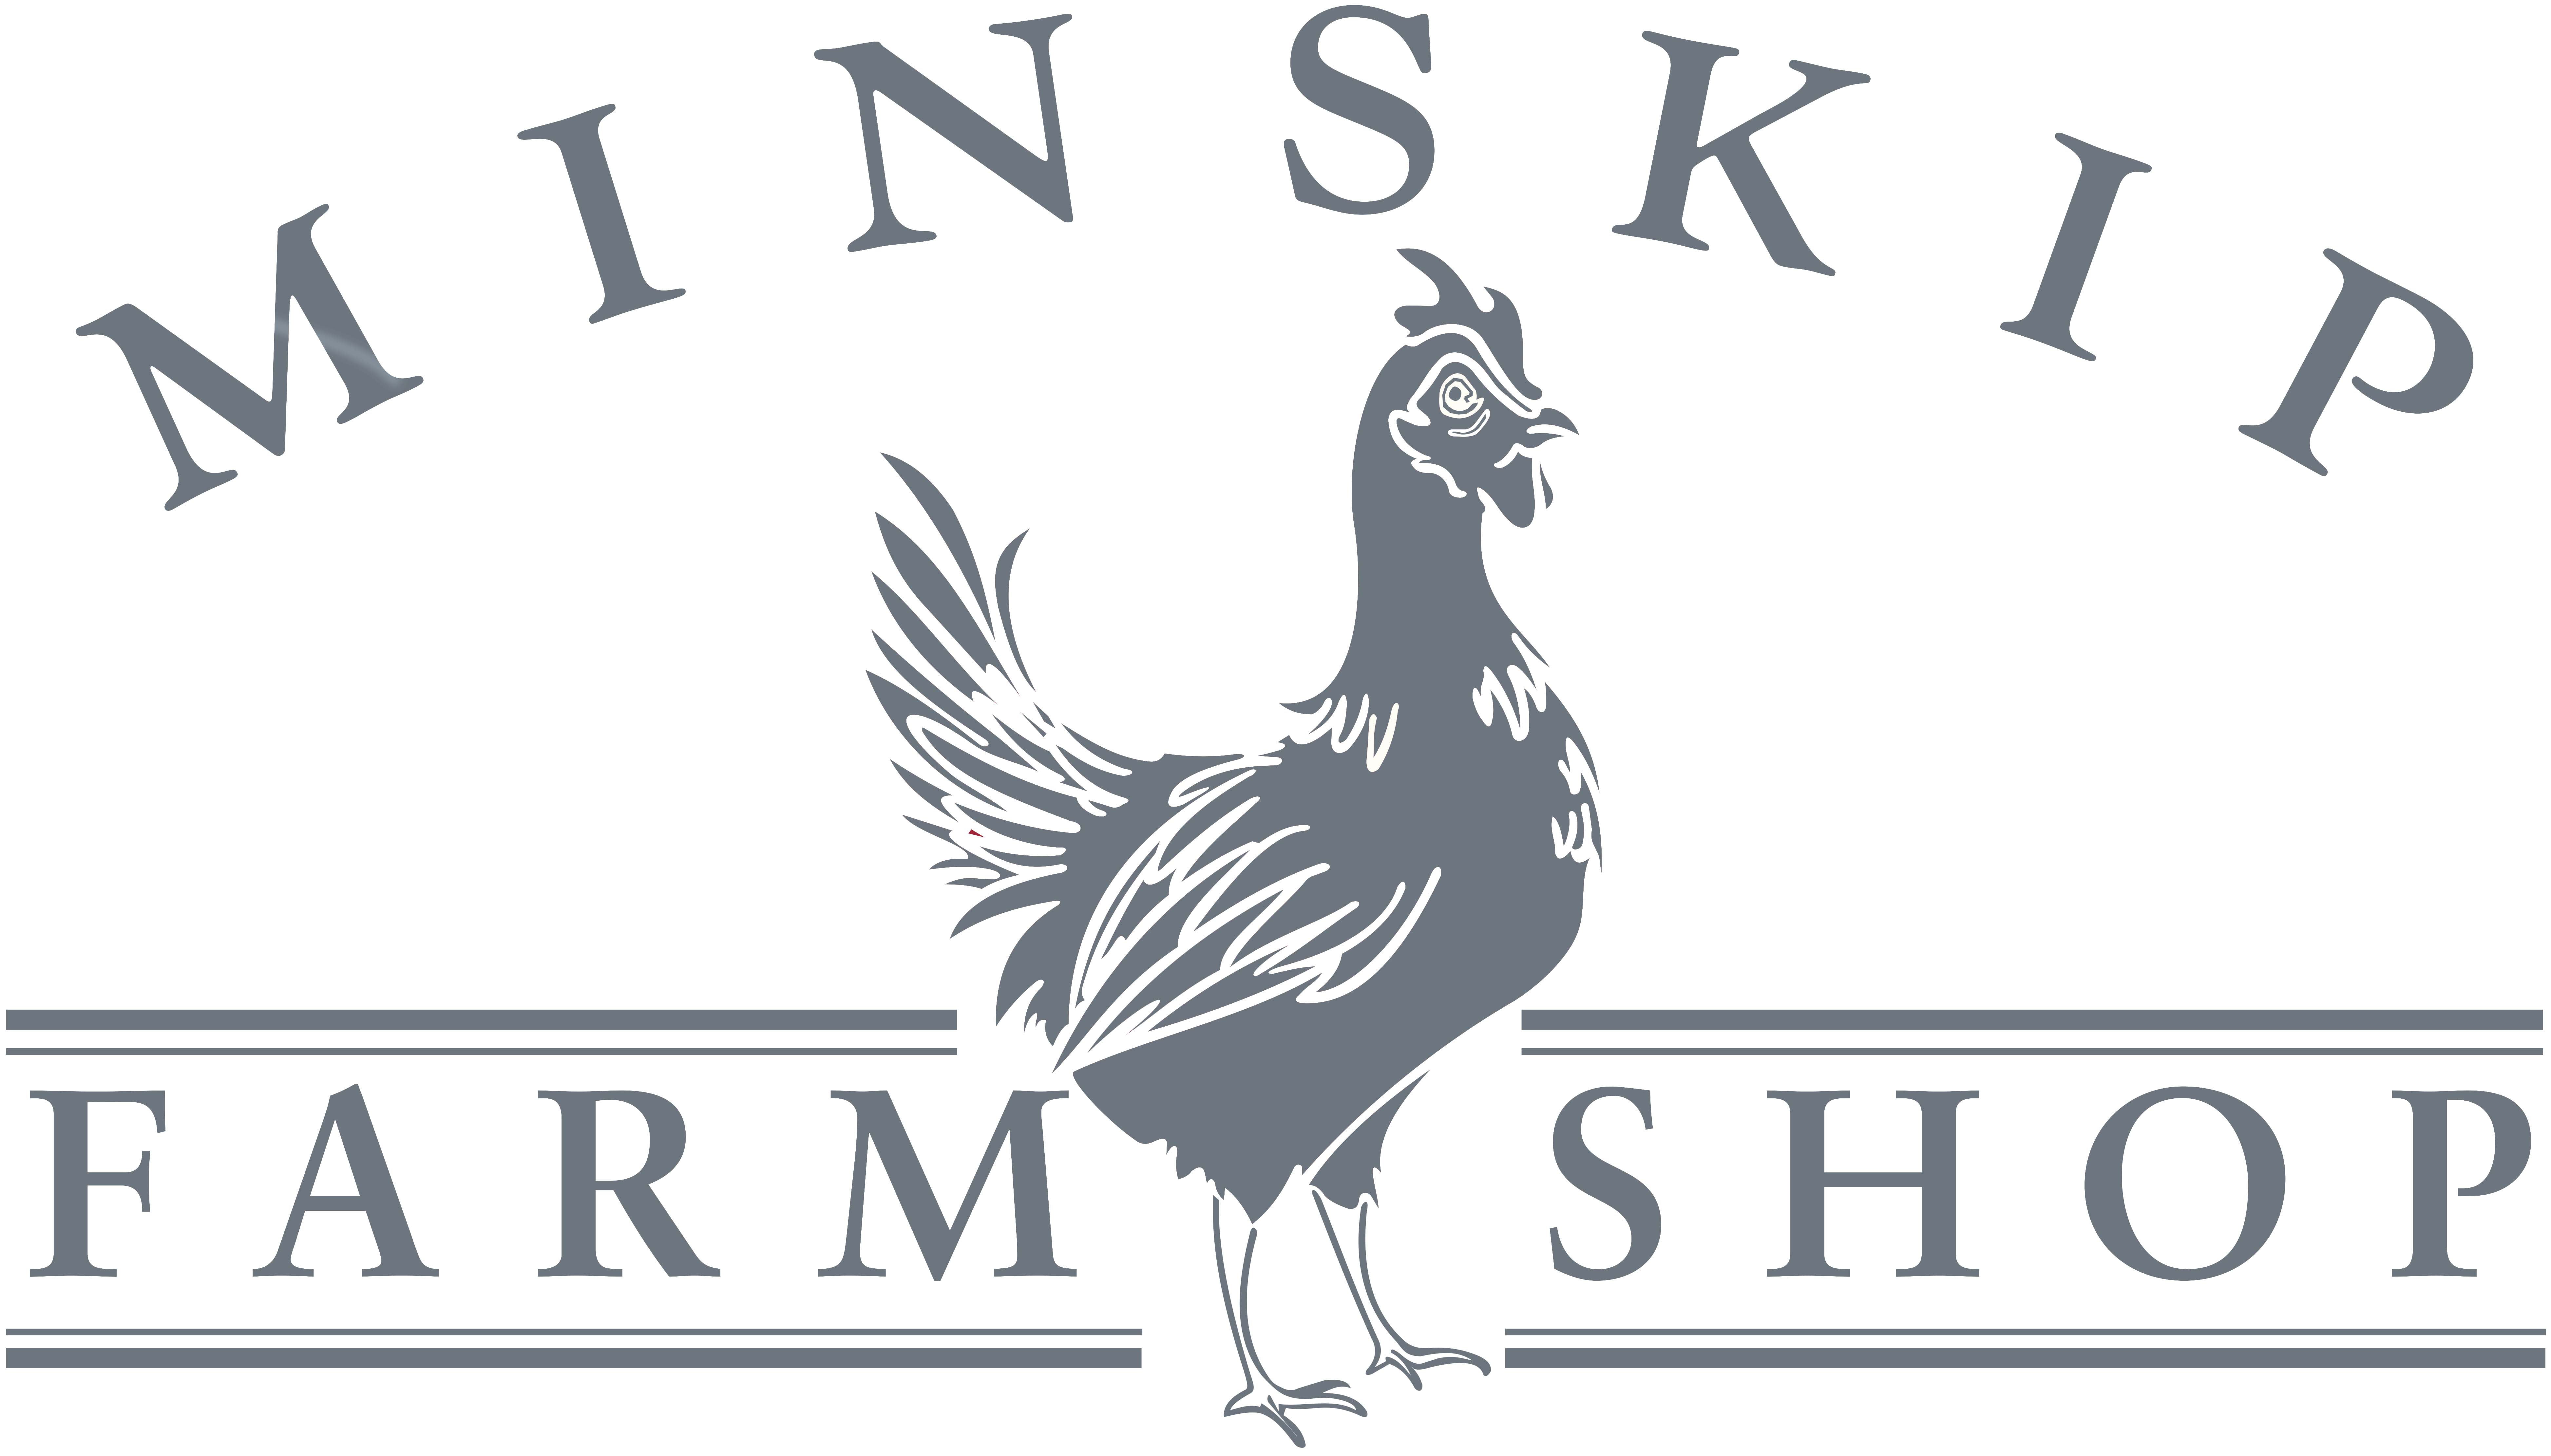 Minskip Farm Shop